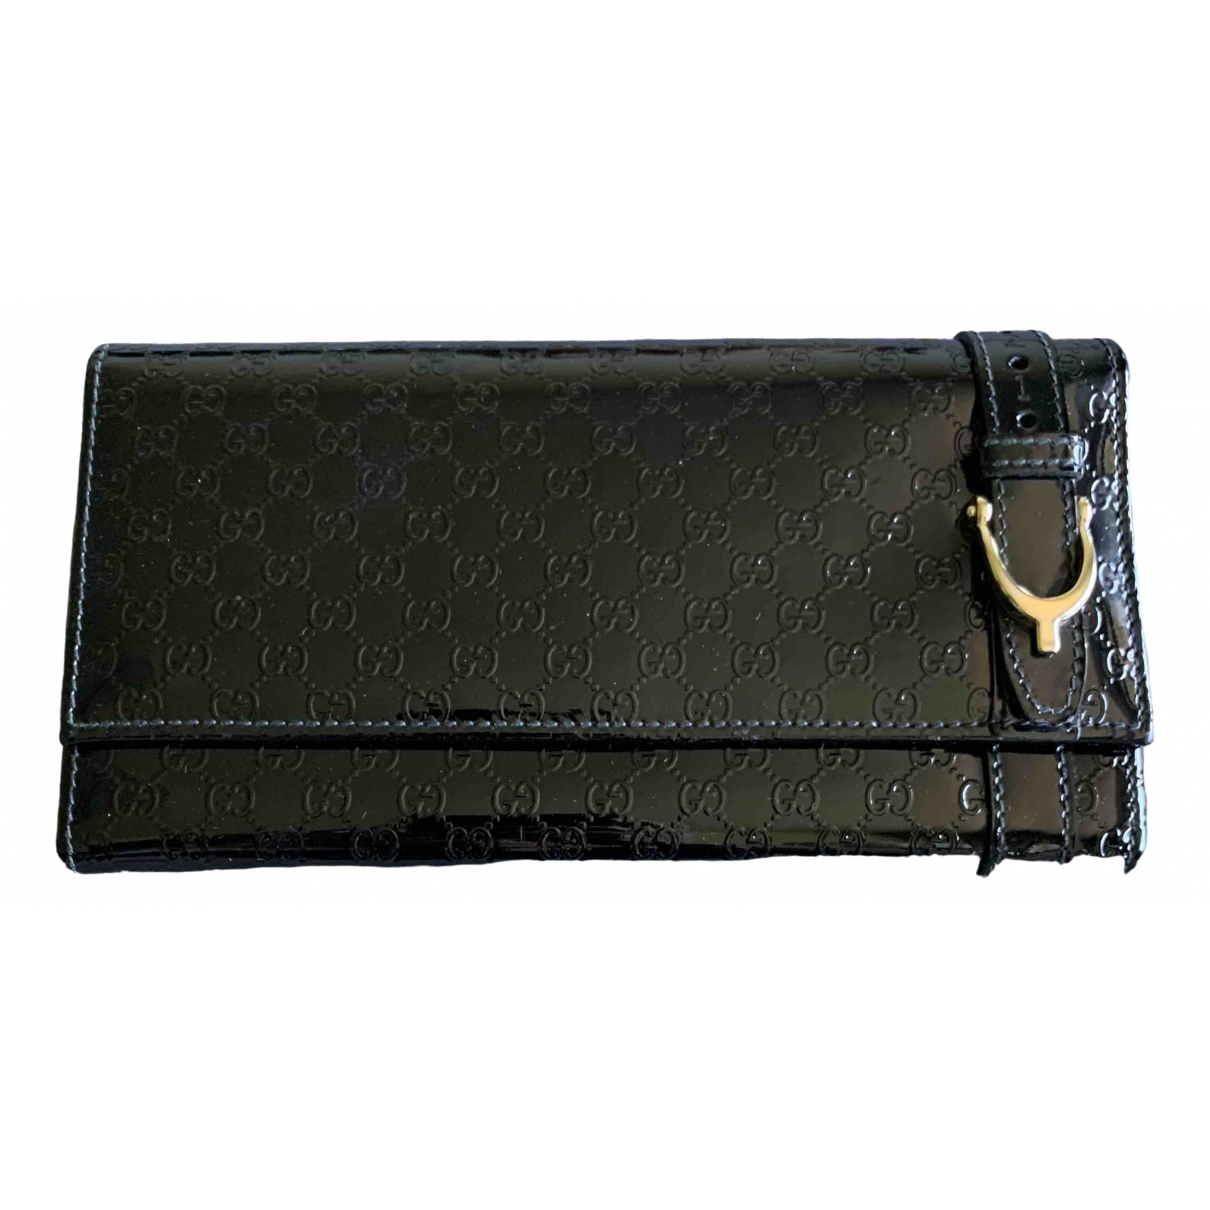 Gucci \N Black Patent leather wallet for Women \N